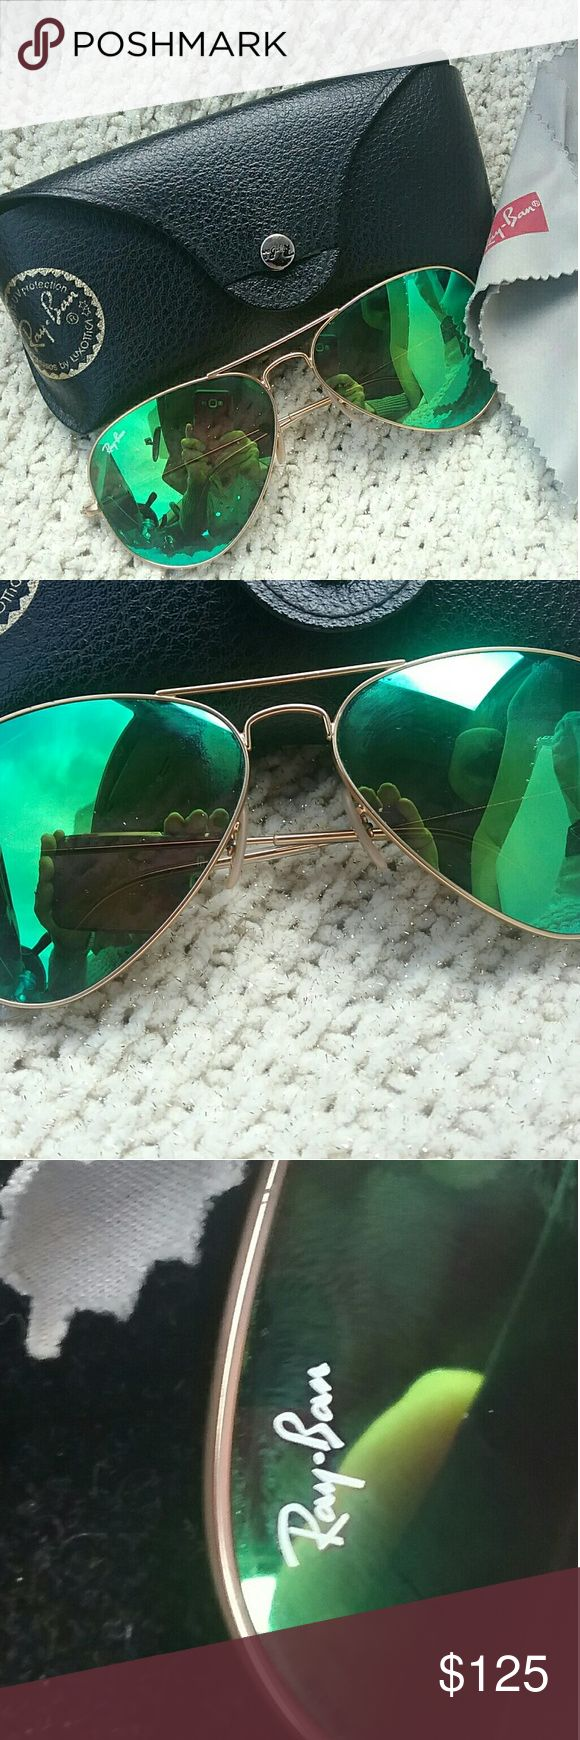 Ray Ban 3025 aviator Sunglasses Beautiful Ray-Ban sunglasses style 3025 in good condition. Light superficual scratches. Damage to the outside flap on the sunglasses case as shown Ray-Ban Accessories Sunglasses